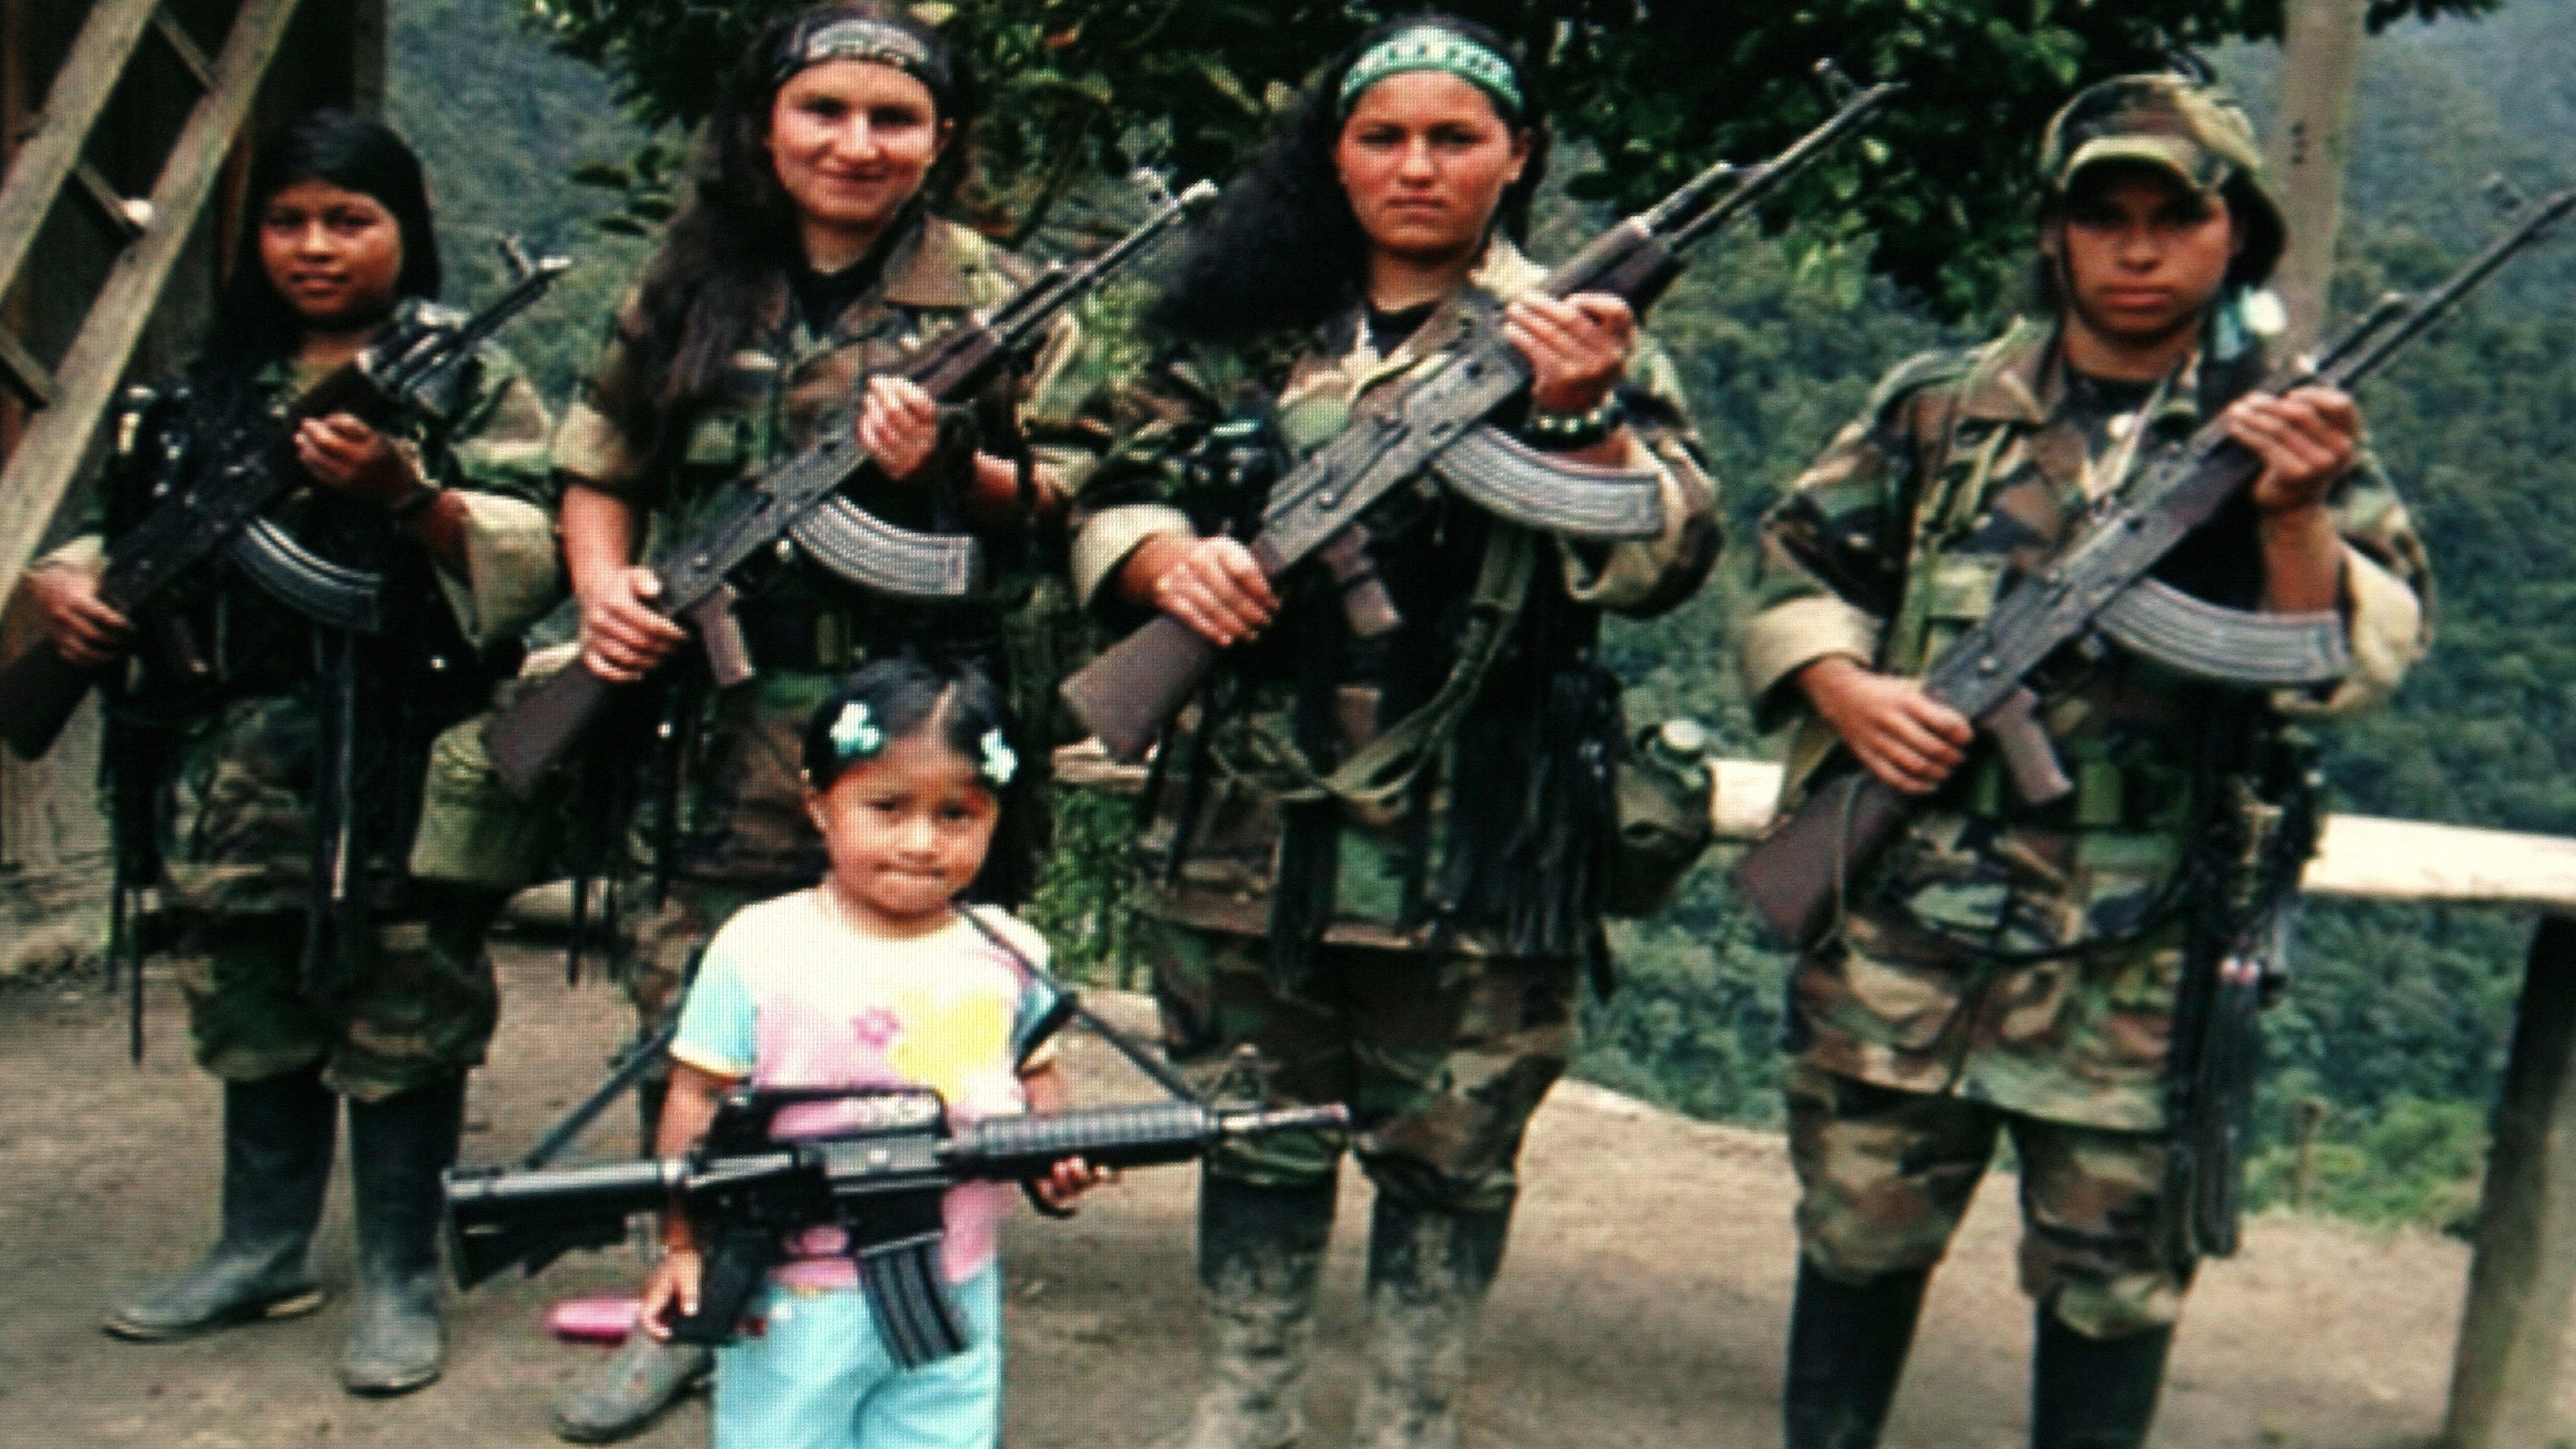 FARC rebels pose with an unidentified girl holding a weapon in southern Colombia in this undated photo confiscated by the Colombian police and released to the media on November 12, 2009. Police said that the photo was found on the body of a rebel killed in a combat against them on October 25, 2008. REUTERS/National Police/Handout   (COLOMBIA MILITARY CONFLICT CRIME LAW POLITICS) FOR EDITORIAL USE ONLY. NOT FOR SALE FOR MARKETING OR ADVERTISING CAMPAIGNS - RTXQNJ9